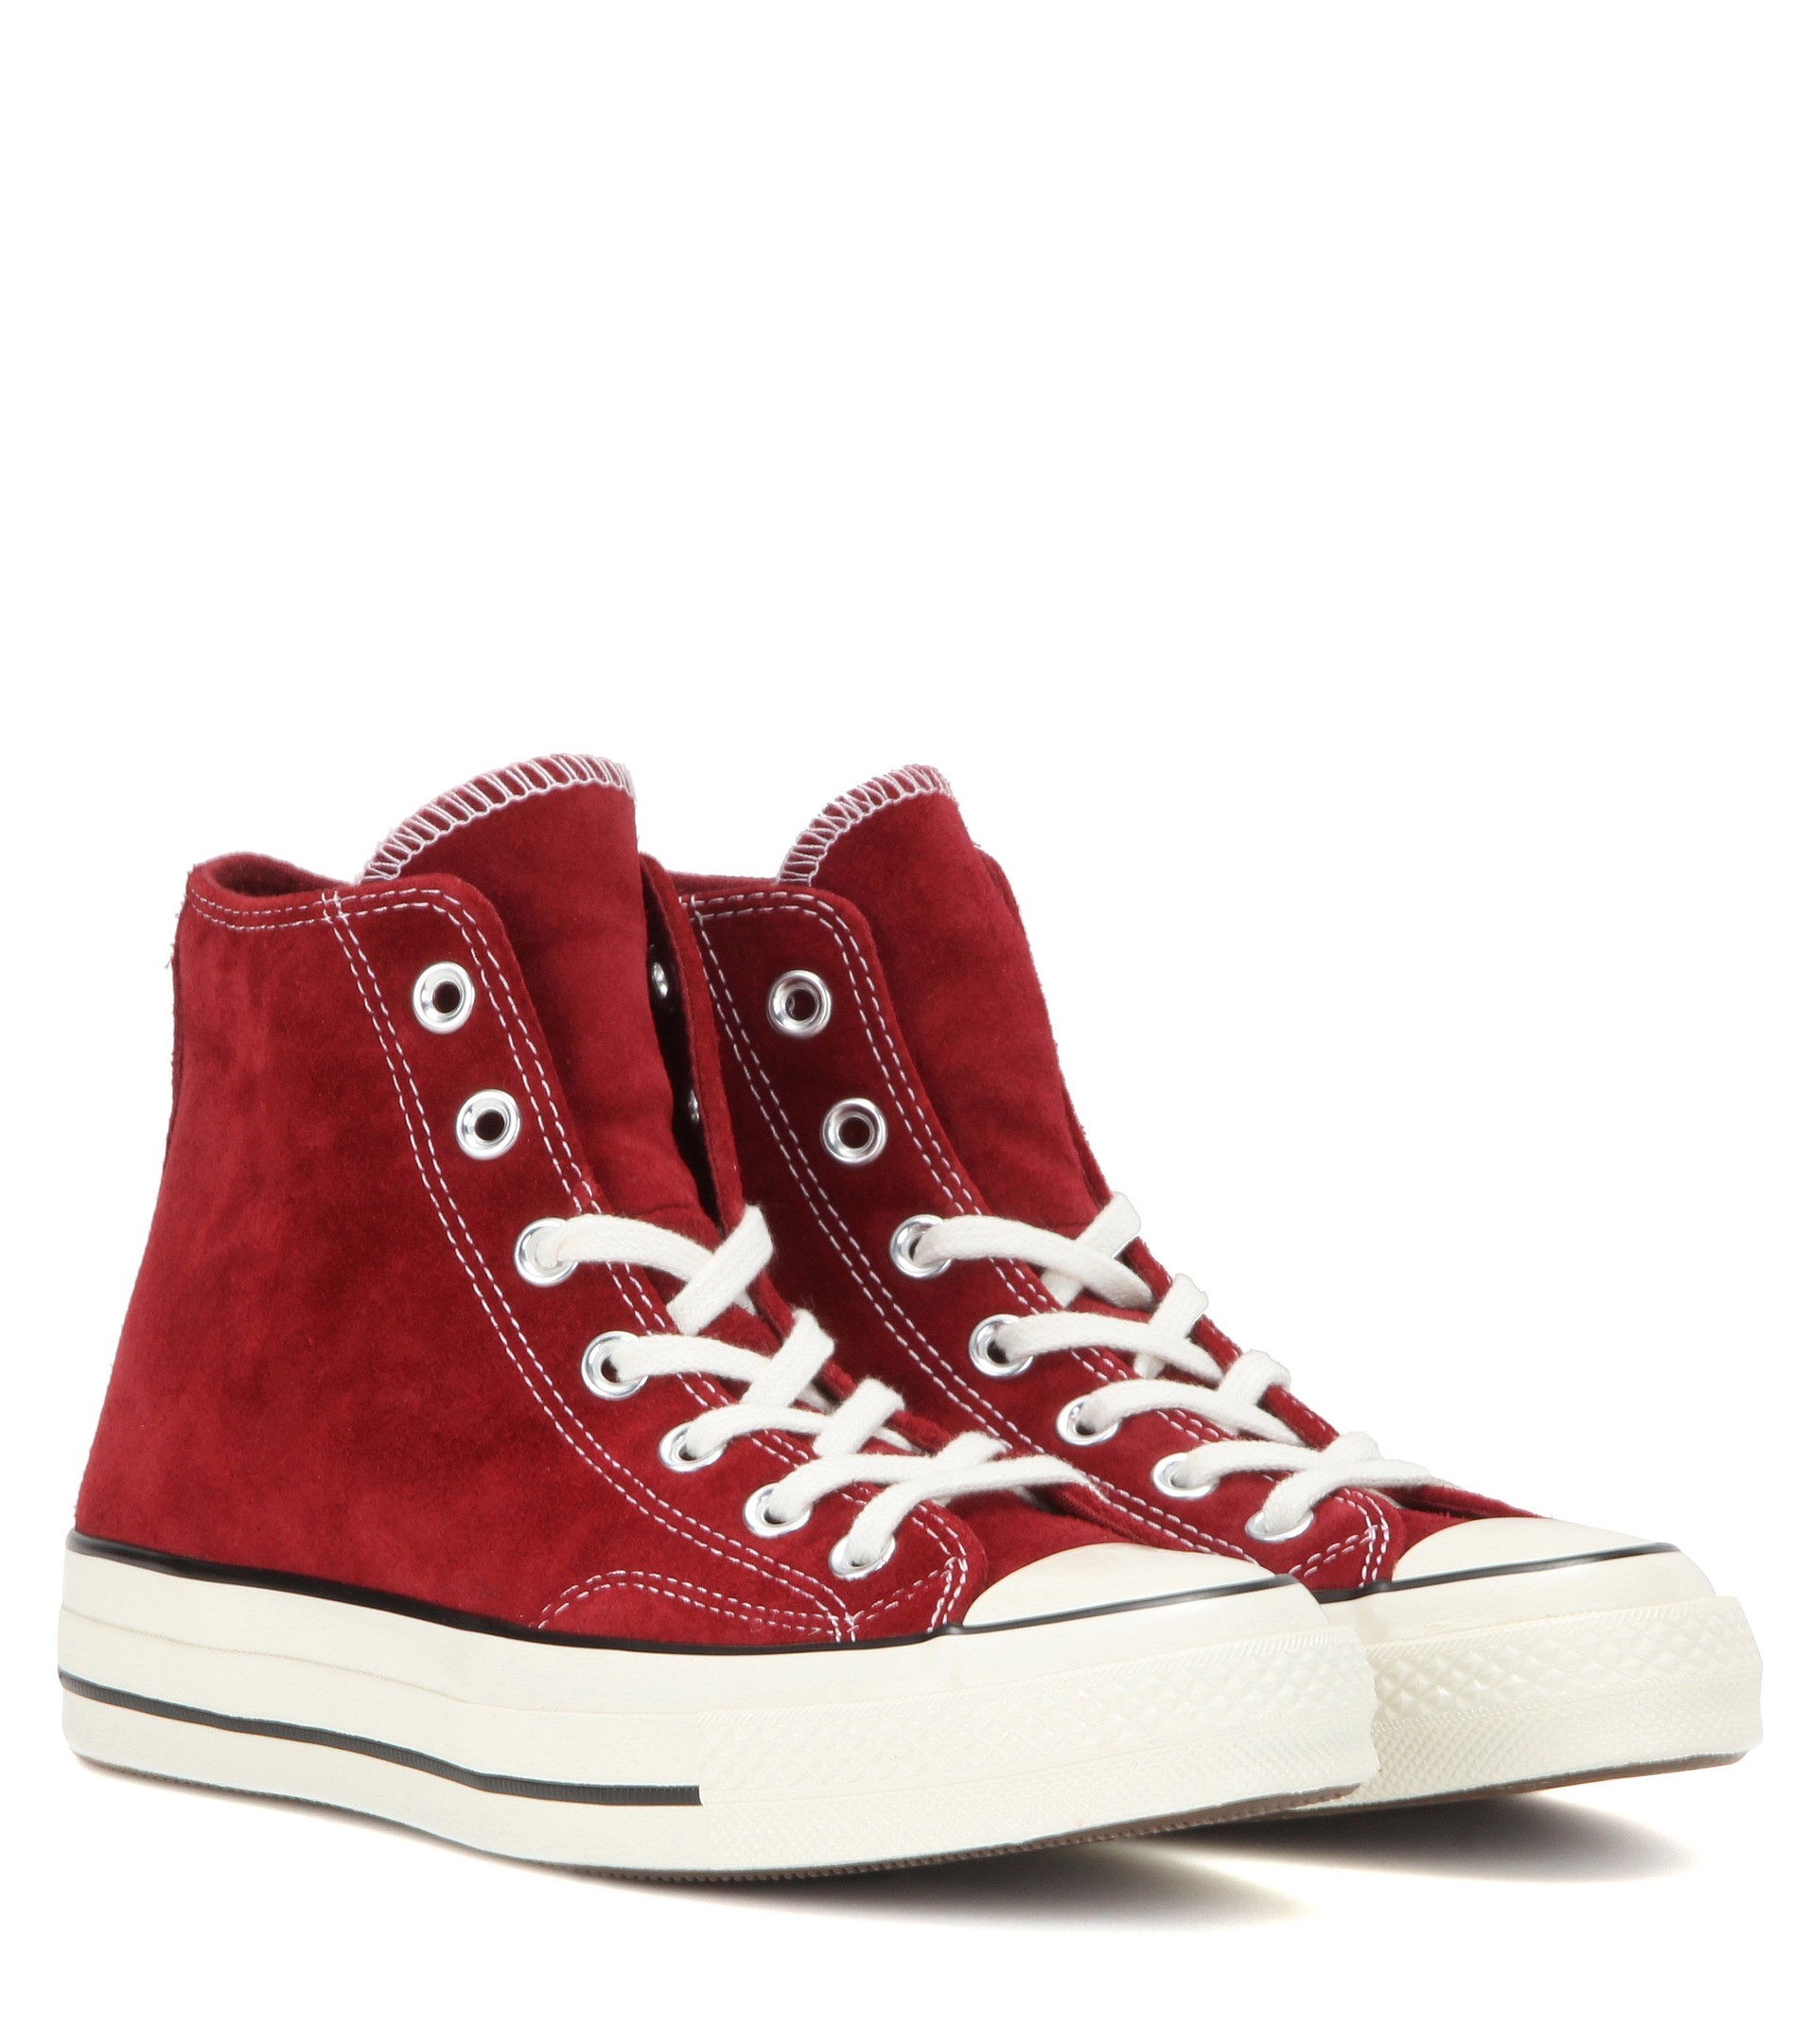 Converse Chuck Taylor Suede High-Top Sneakers In Red - Lyst-8859